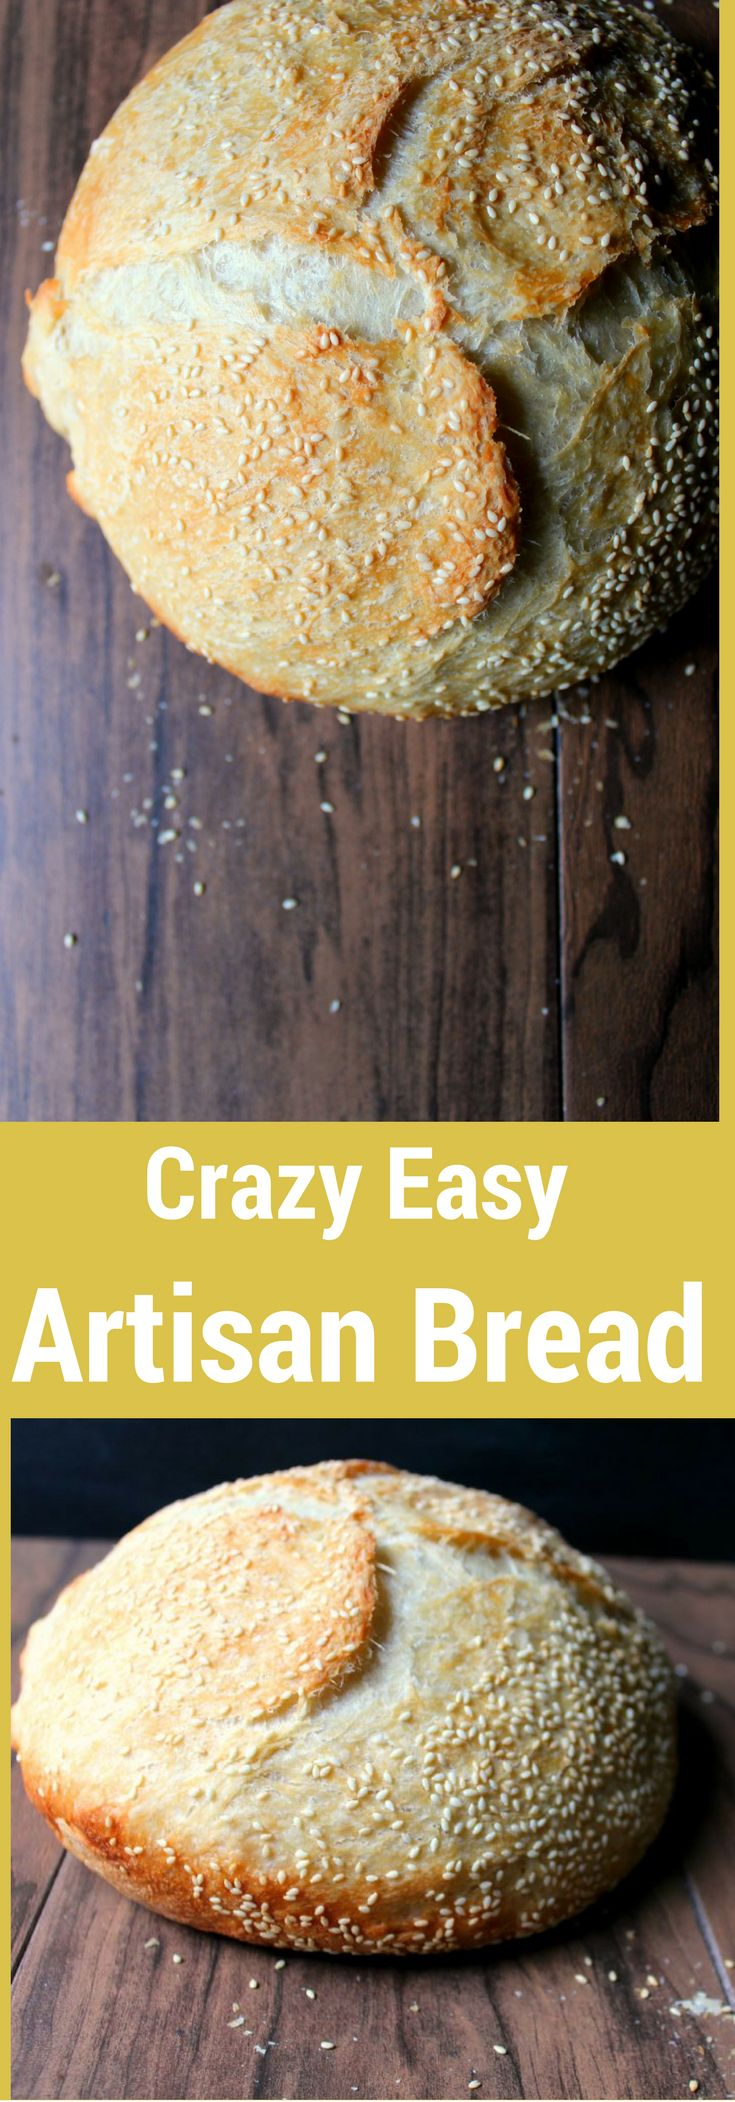 This Artisan Bread is INSANELY good and INSANELY EASY!